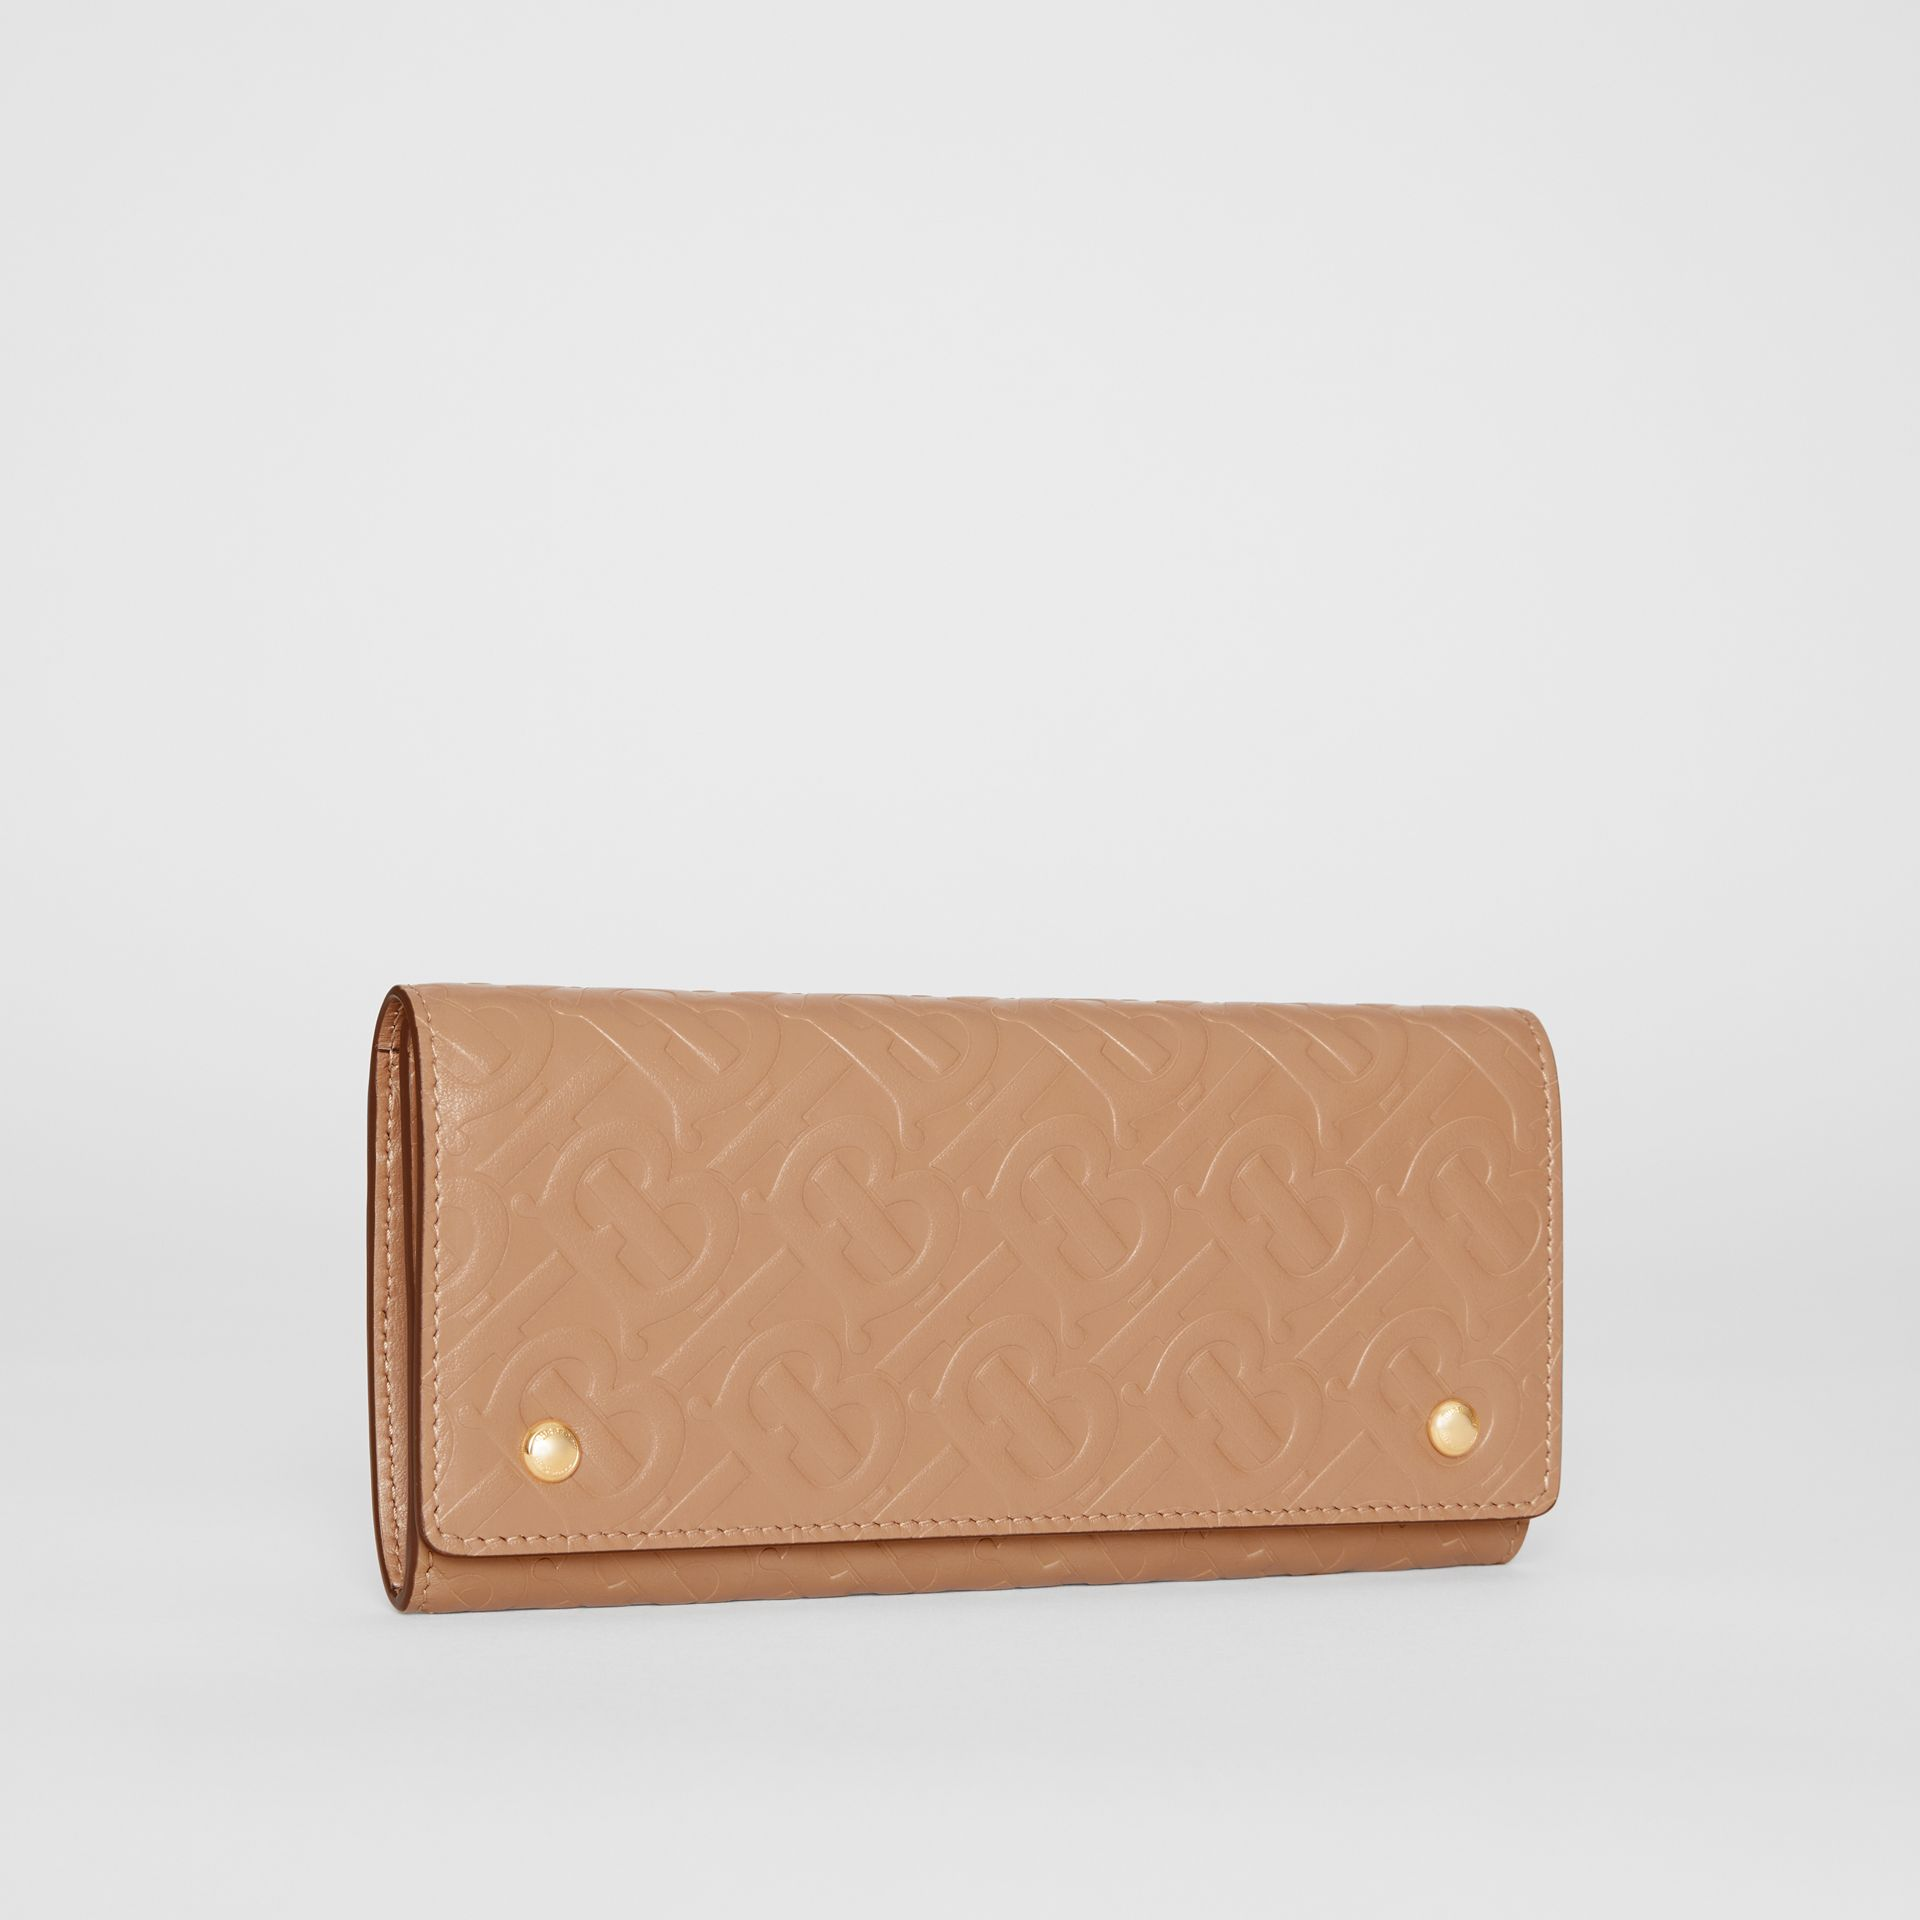 Monogram Leather Continental Wallet in Light Camel - Women | Burberry - gallery image 4